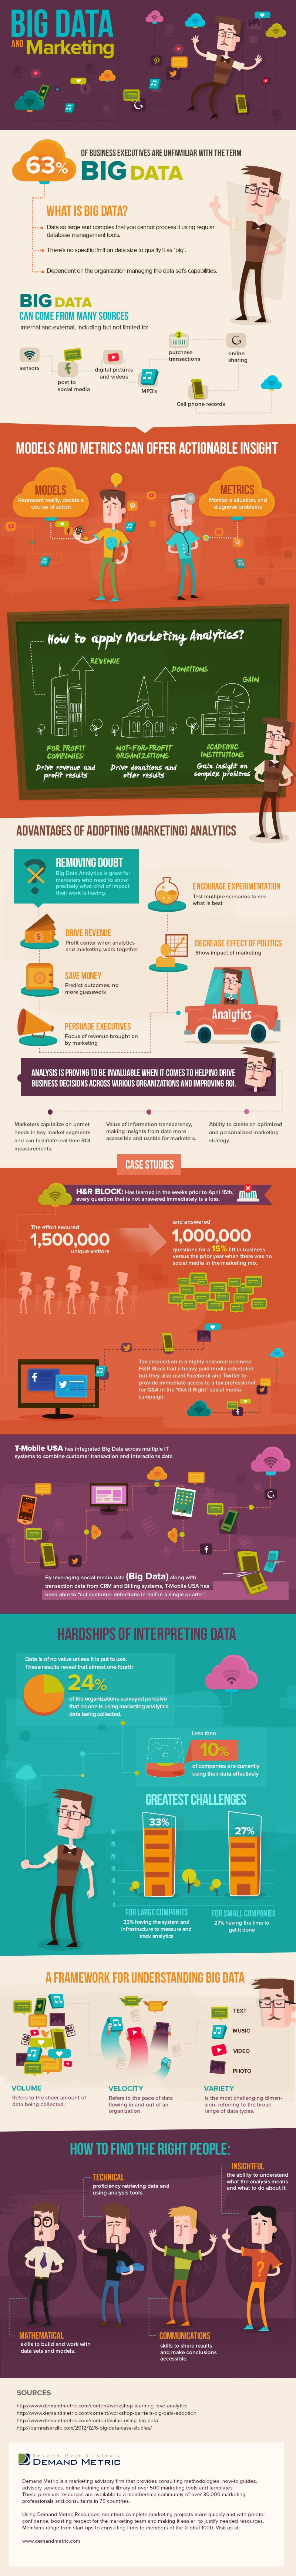 Big Data And Marketing   #Infographic